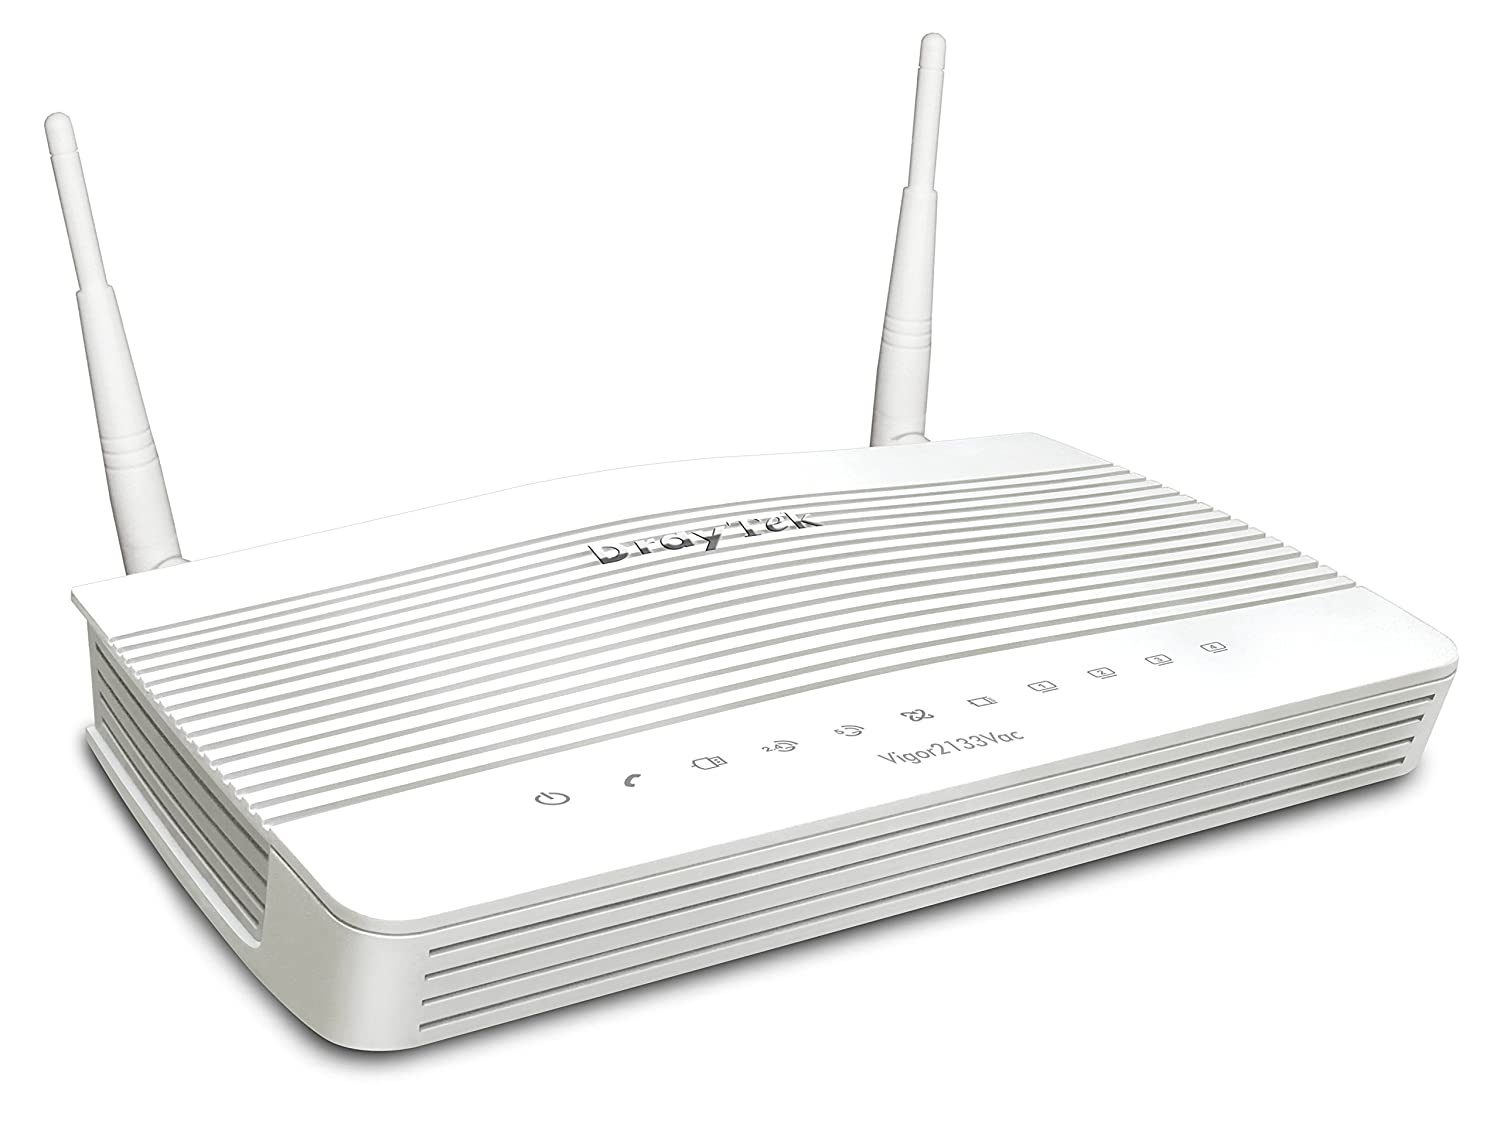 750 Mbit//s, 2.4-5, 2 Channels, IEEE 802.11ac // a//b//g//n, Inal/ámbrico, SSID,WEP,WPA,WPA-PSK,WPA2,WPA2-PSK Approx appRP03 750Mbit//s Color Blanco Repetidor